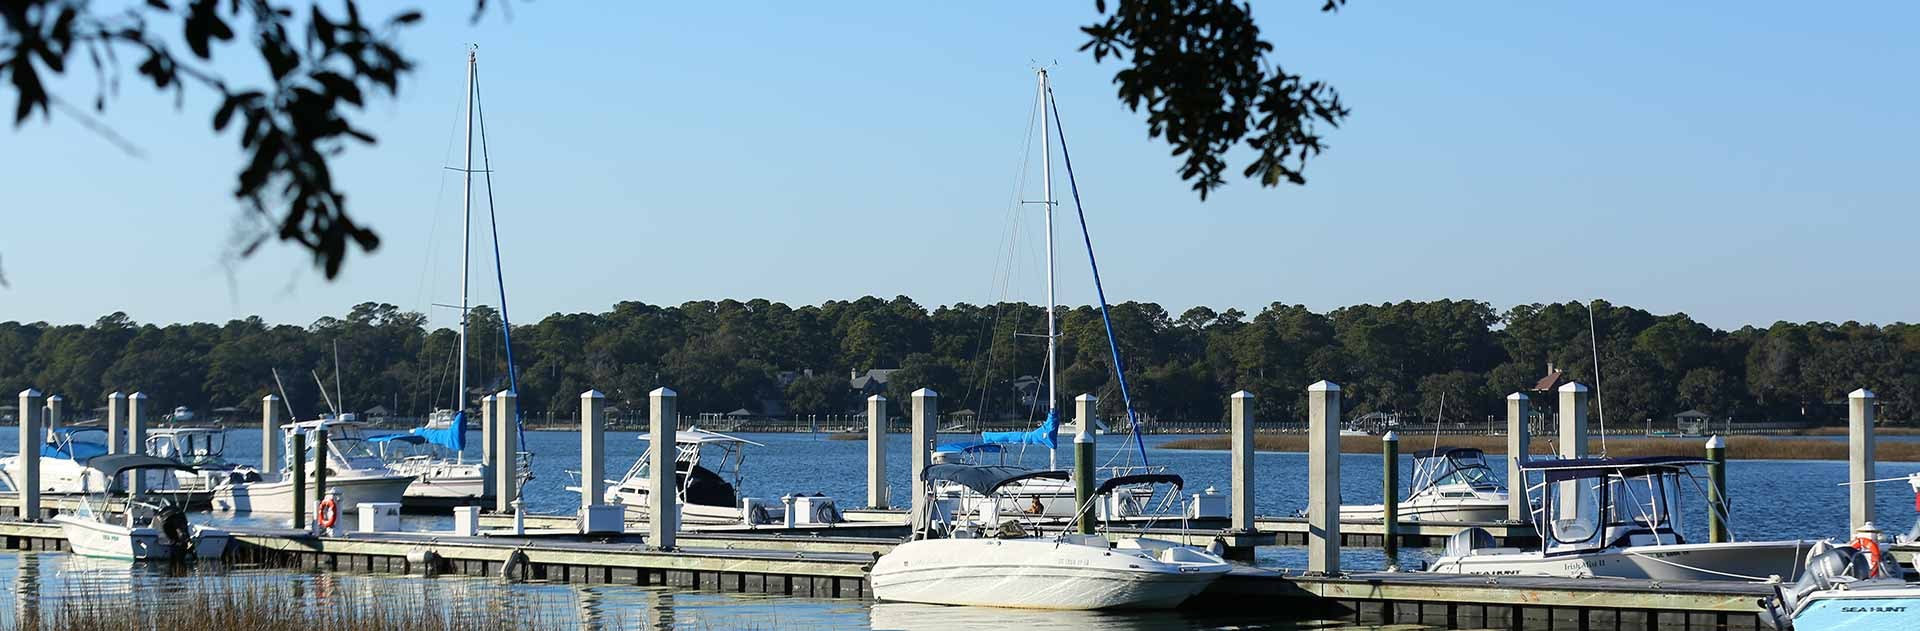 Long Cove Club Marina